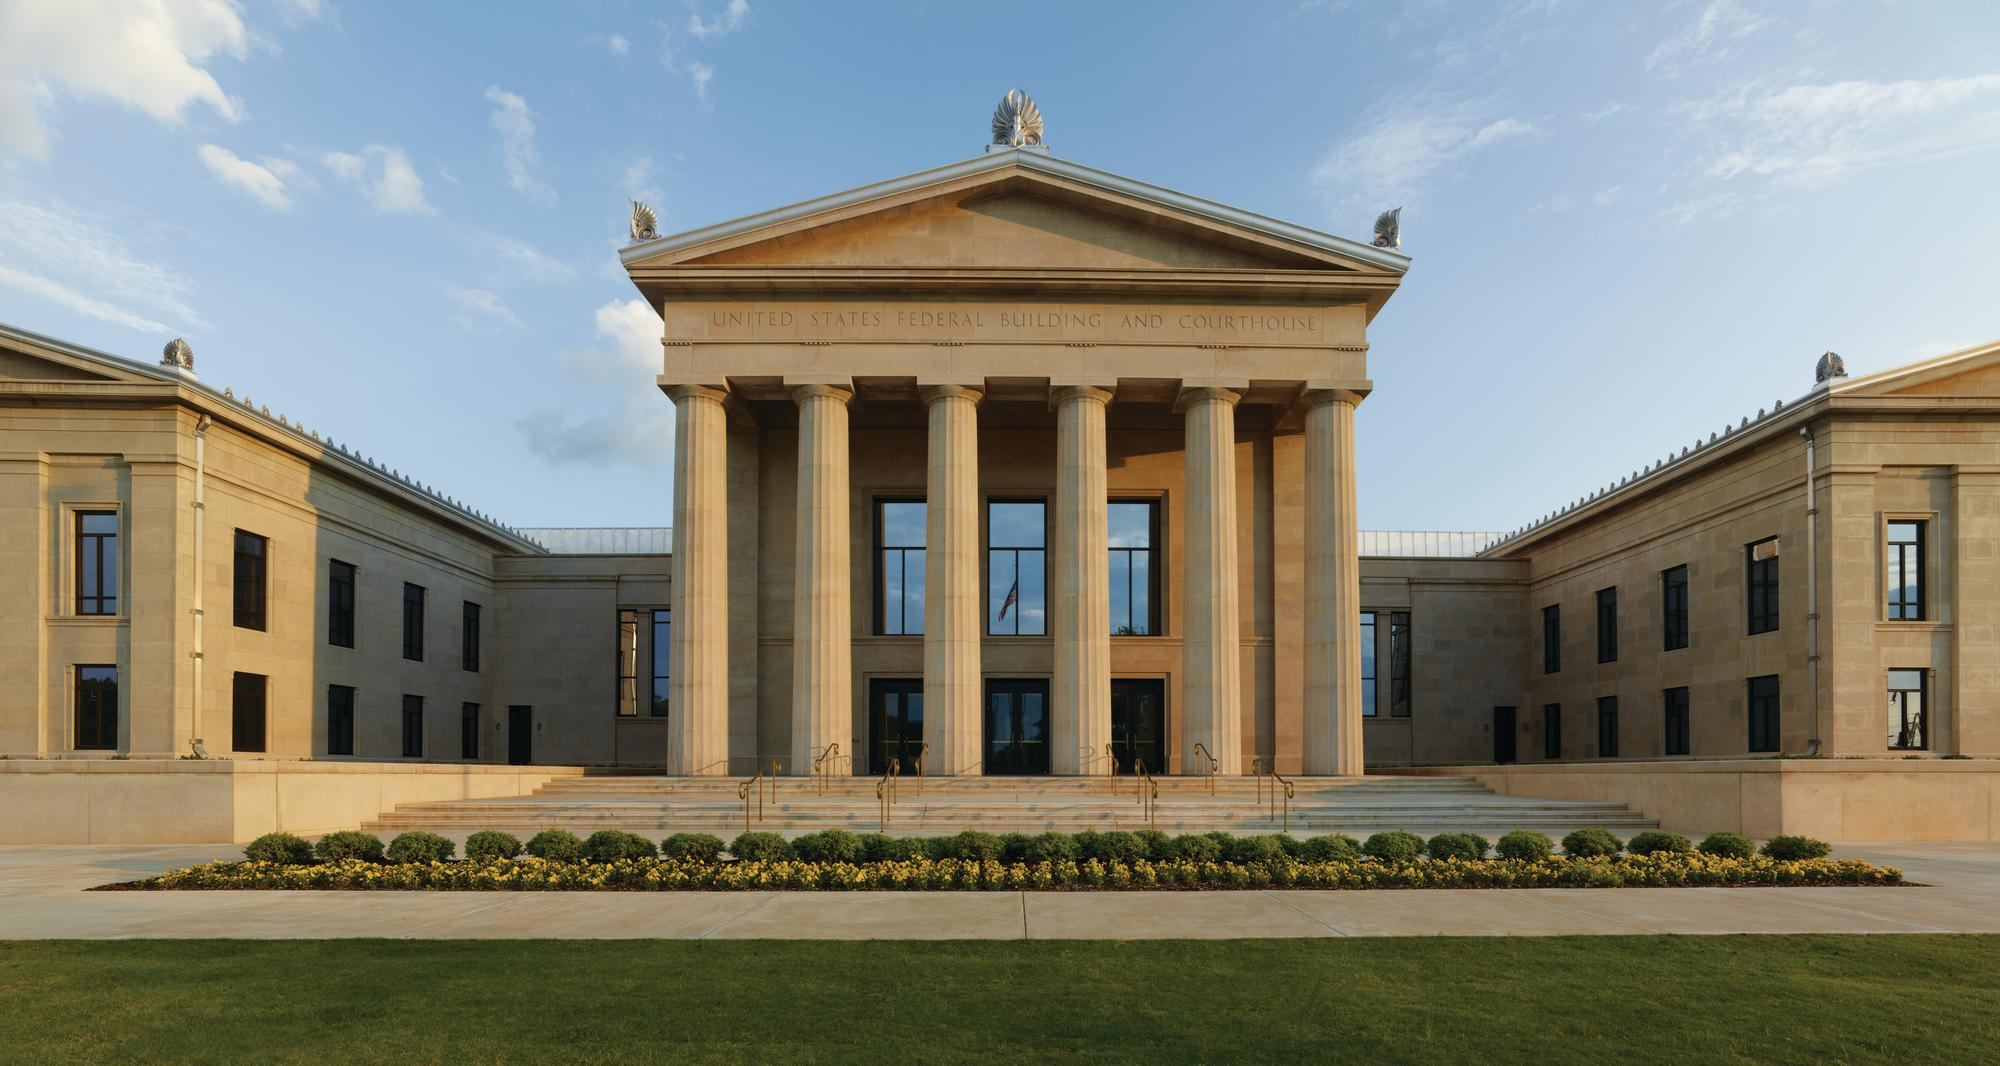 Tuscaloosa Federal Building And Courthouse Architect